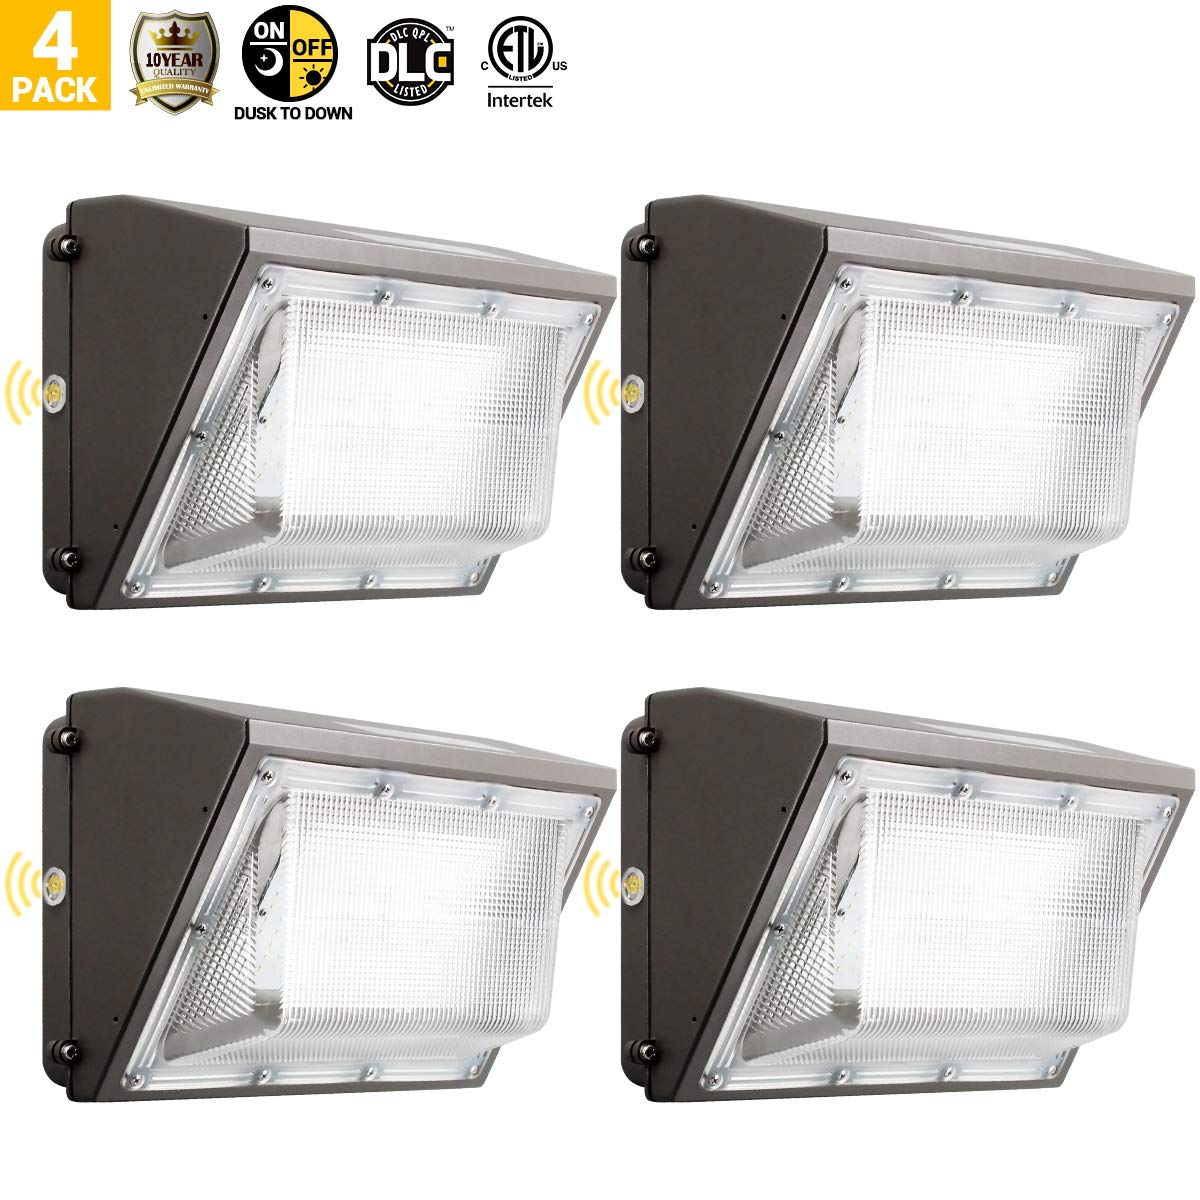 60W Led Wall Pack Light with Photocell, 4PK Outdoor Security Lighting, 5000K Daylight, 6600LM, Lifetime 50000H, Ip65 Waterproof Area Lighting, 10 Years Warranty